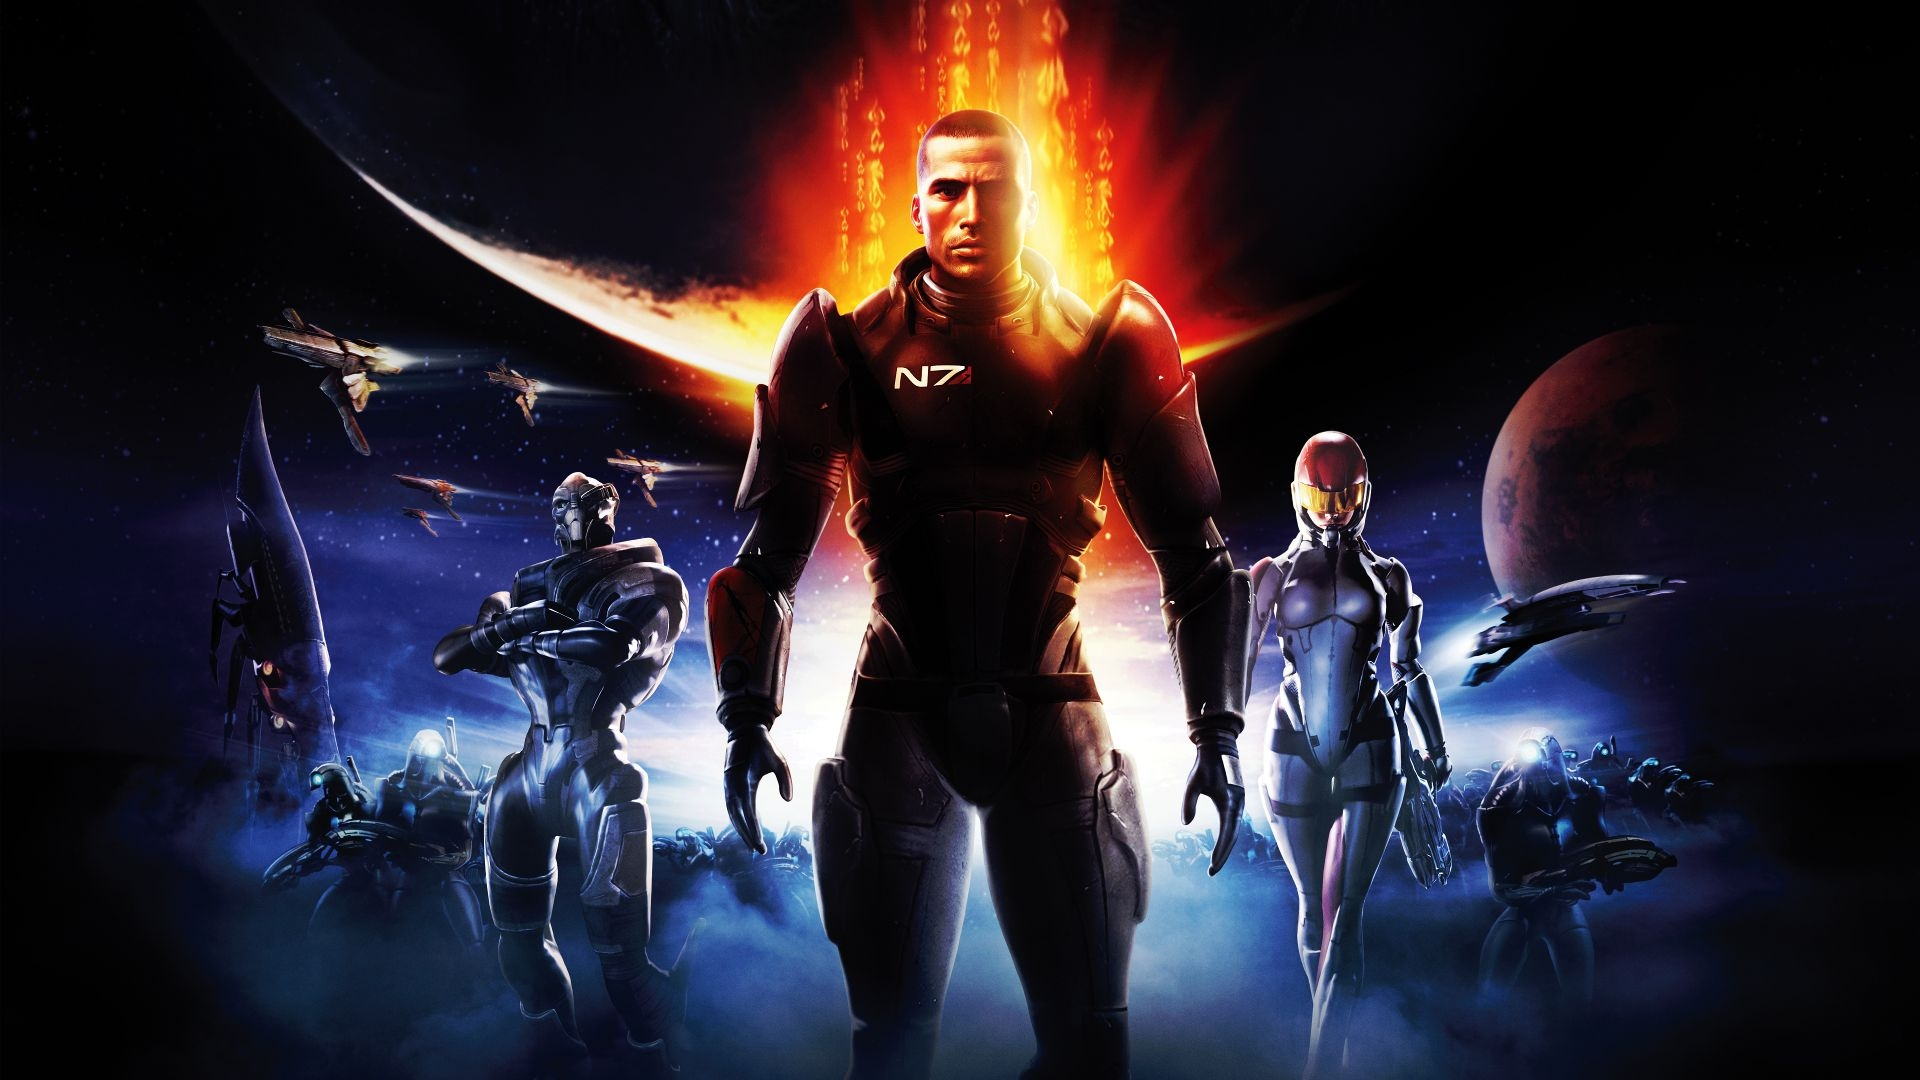 Mass Effect rpg pc game 2008